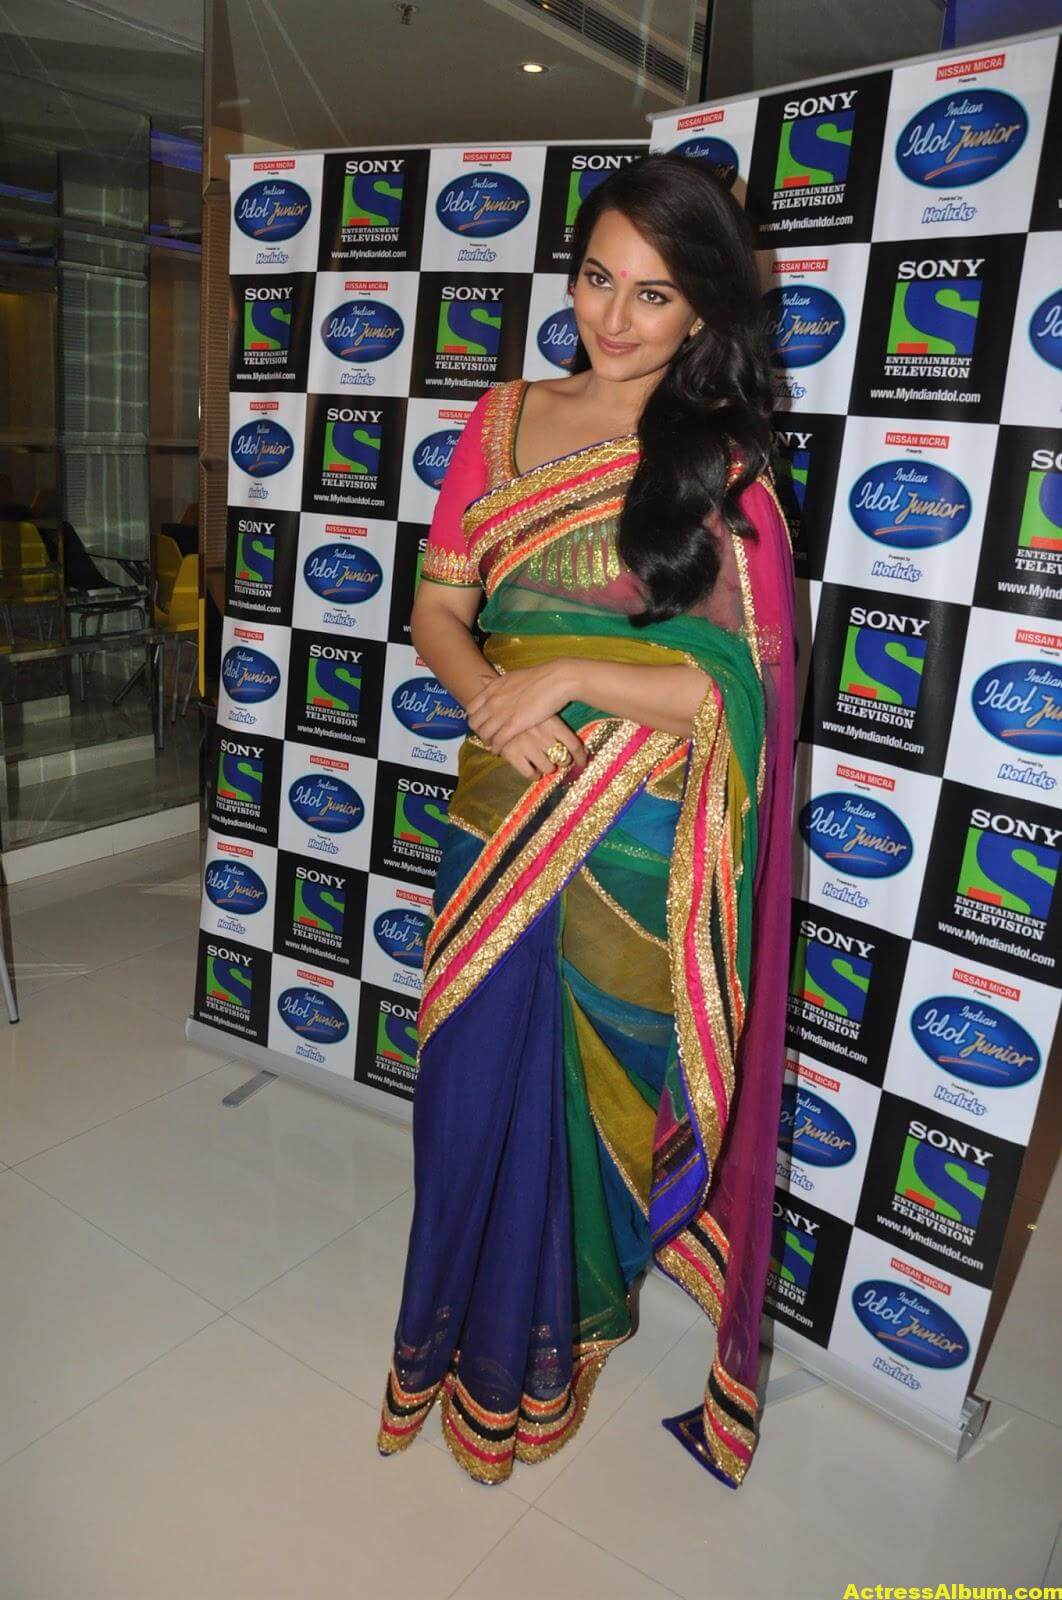 Sonakshi Sinha Looks Spicy In Colorful Saree Photoshoot 3